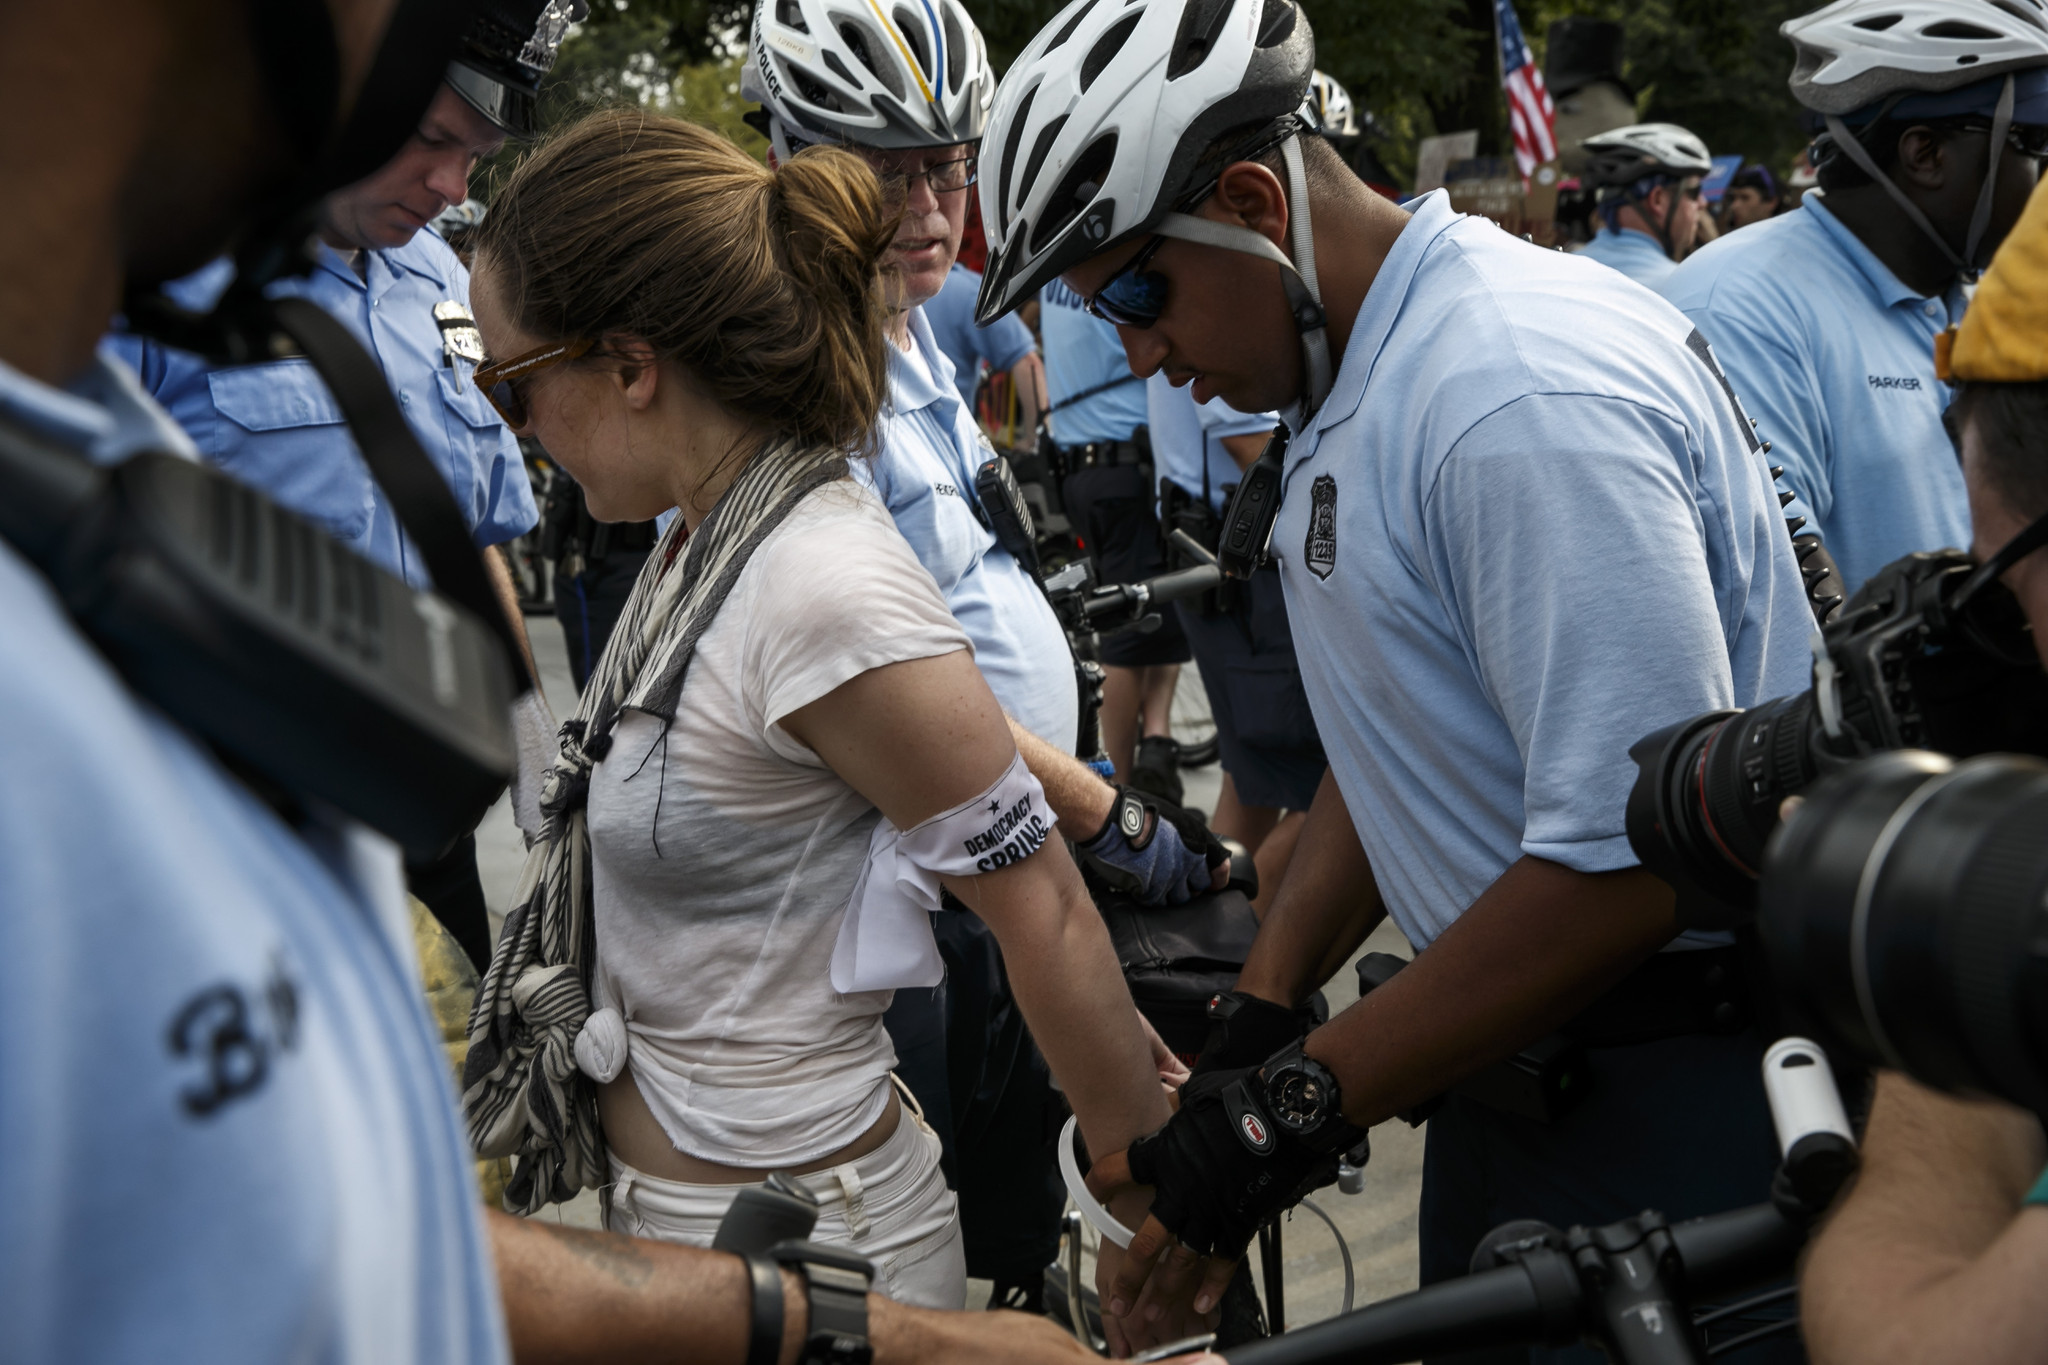 Protesters are detained and cited as they climb past a barrier set up by police at the Democratic National Convention